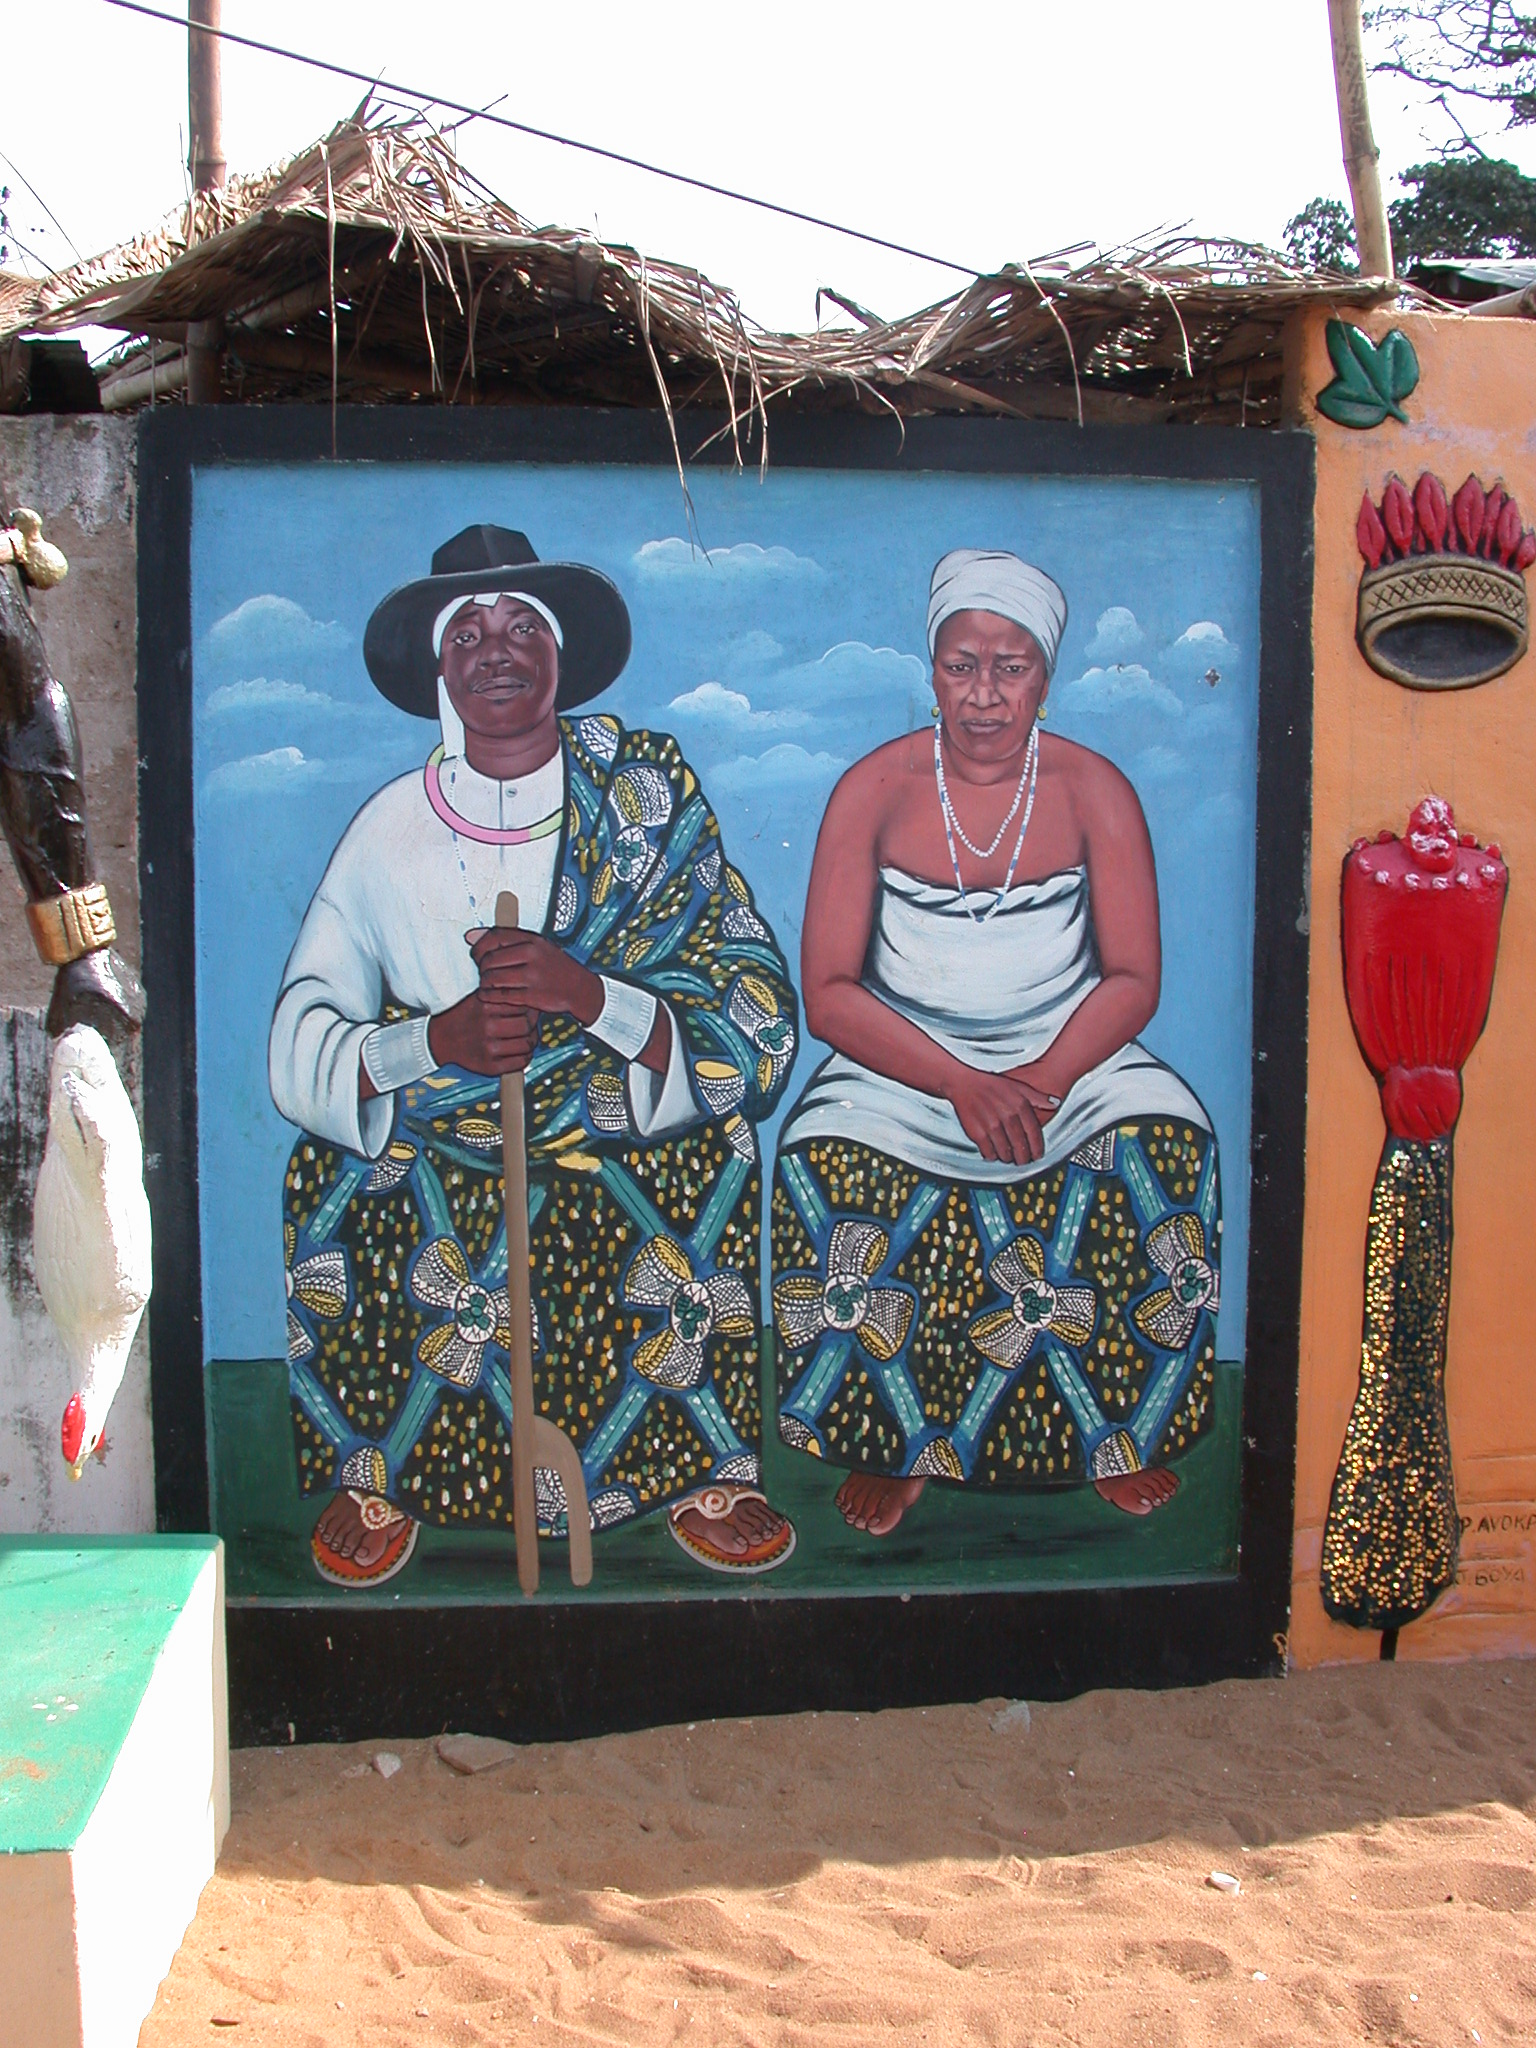 Painting of Daagbo Hounon and His Late Wife, Daagbo Hounon Dodo Palace, Ouidah, Benin